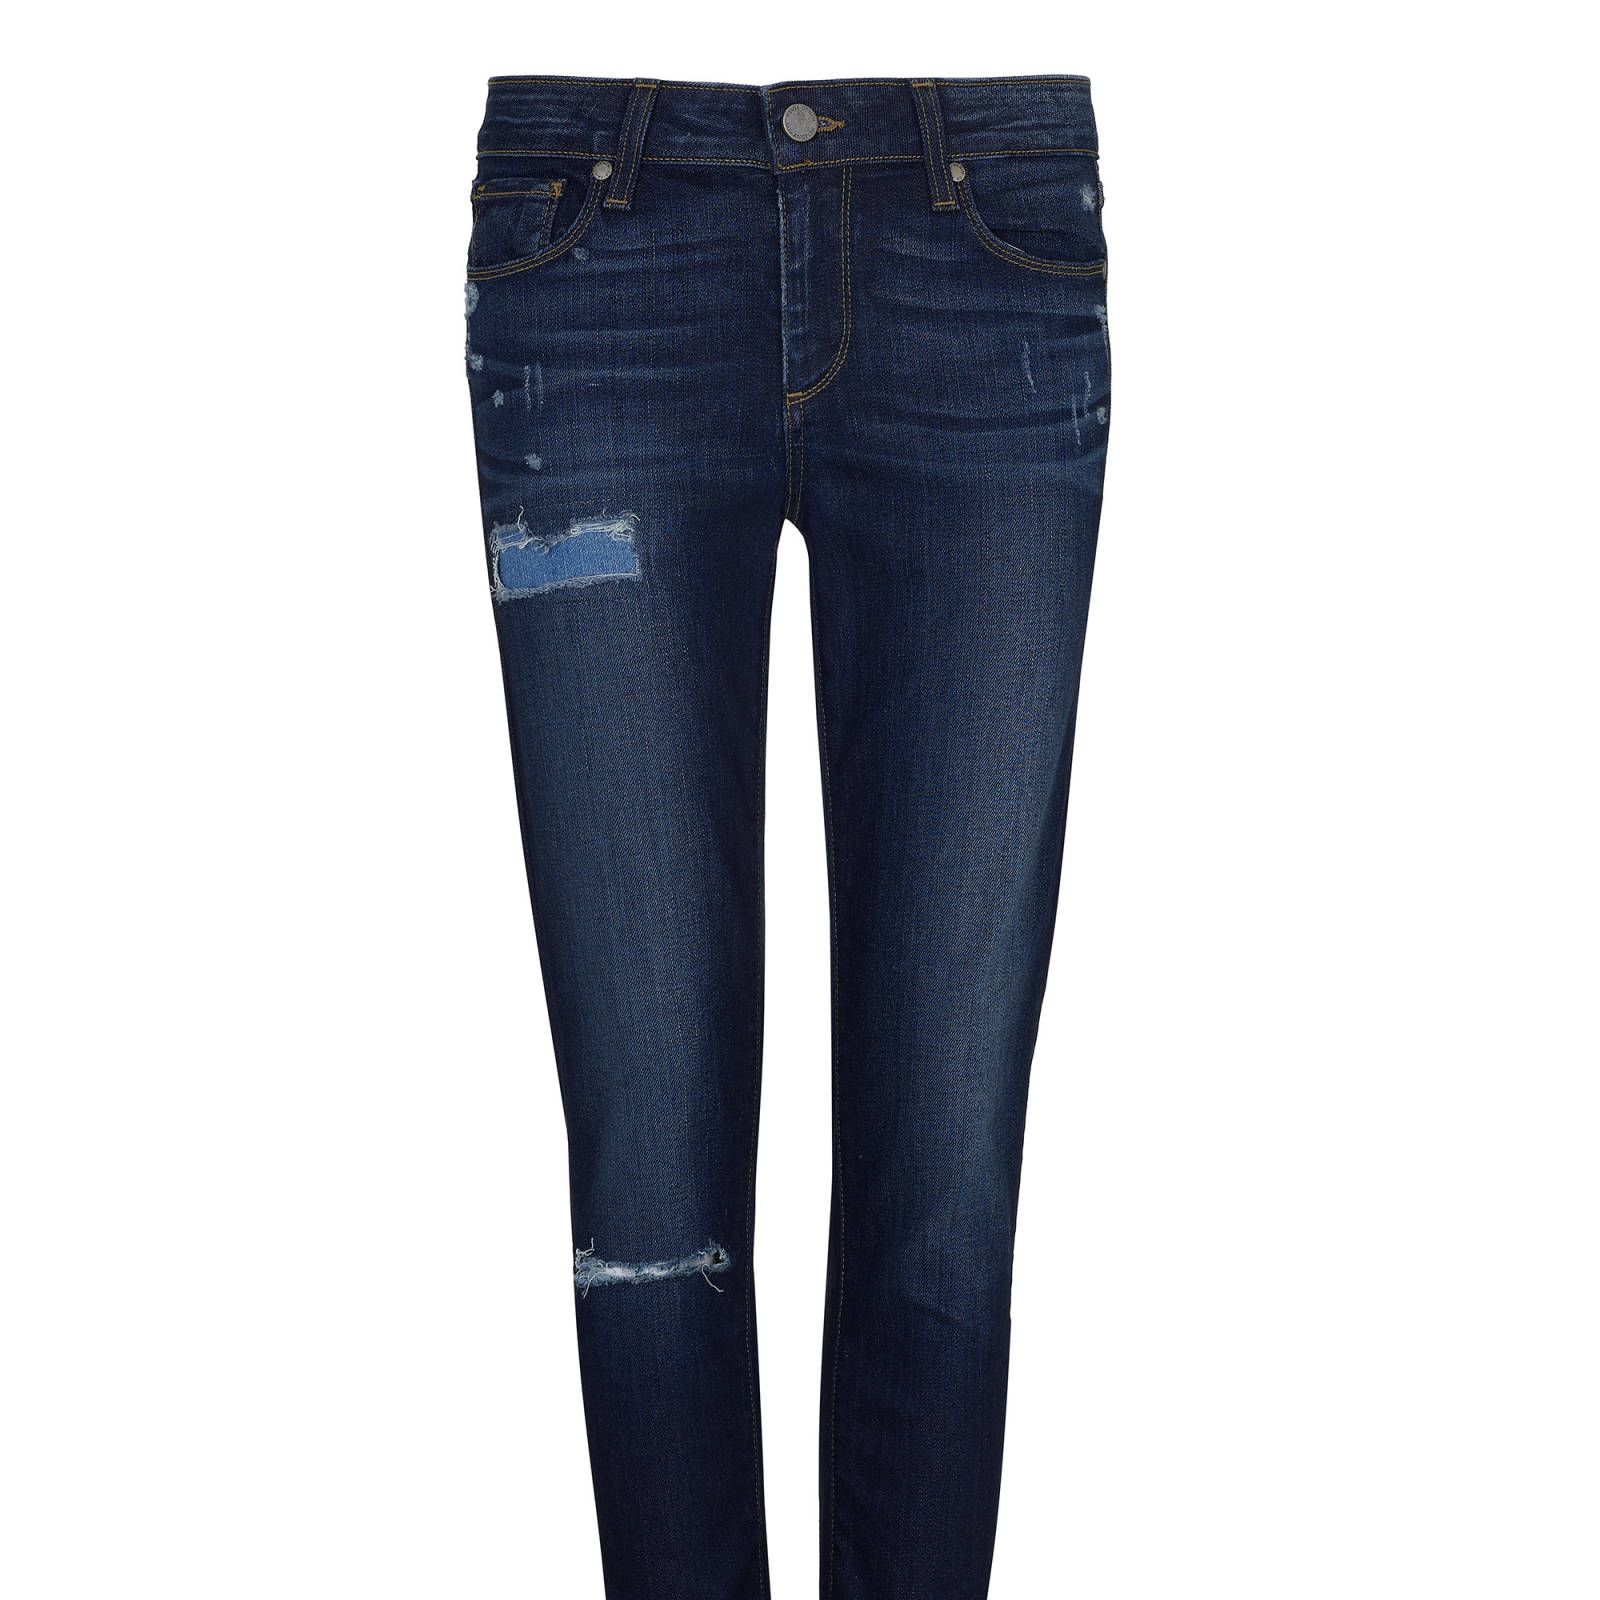 Rip and repair denim is going to be everywhere for autumn/winter. Make sure you don't miss out with these Paige Denim jeans.